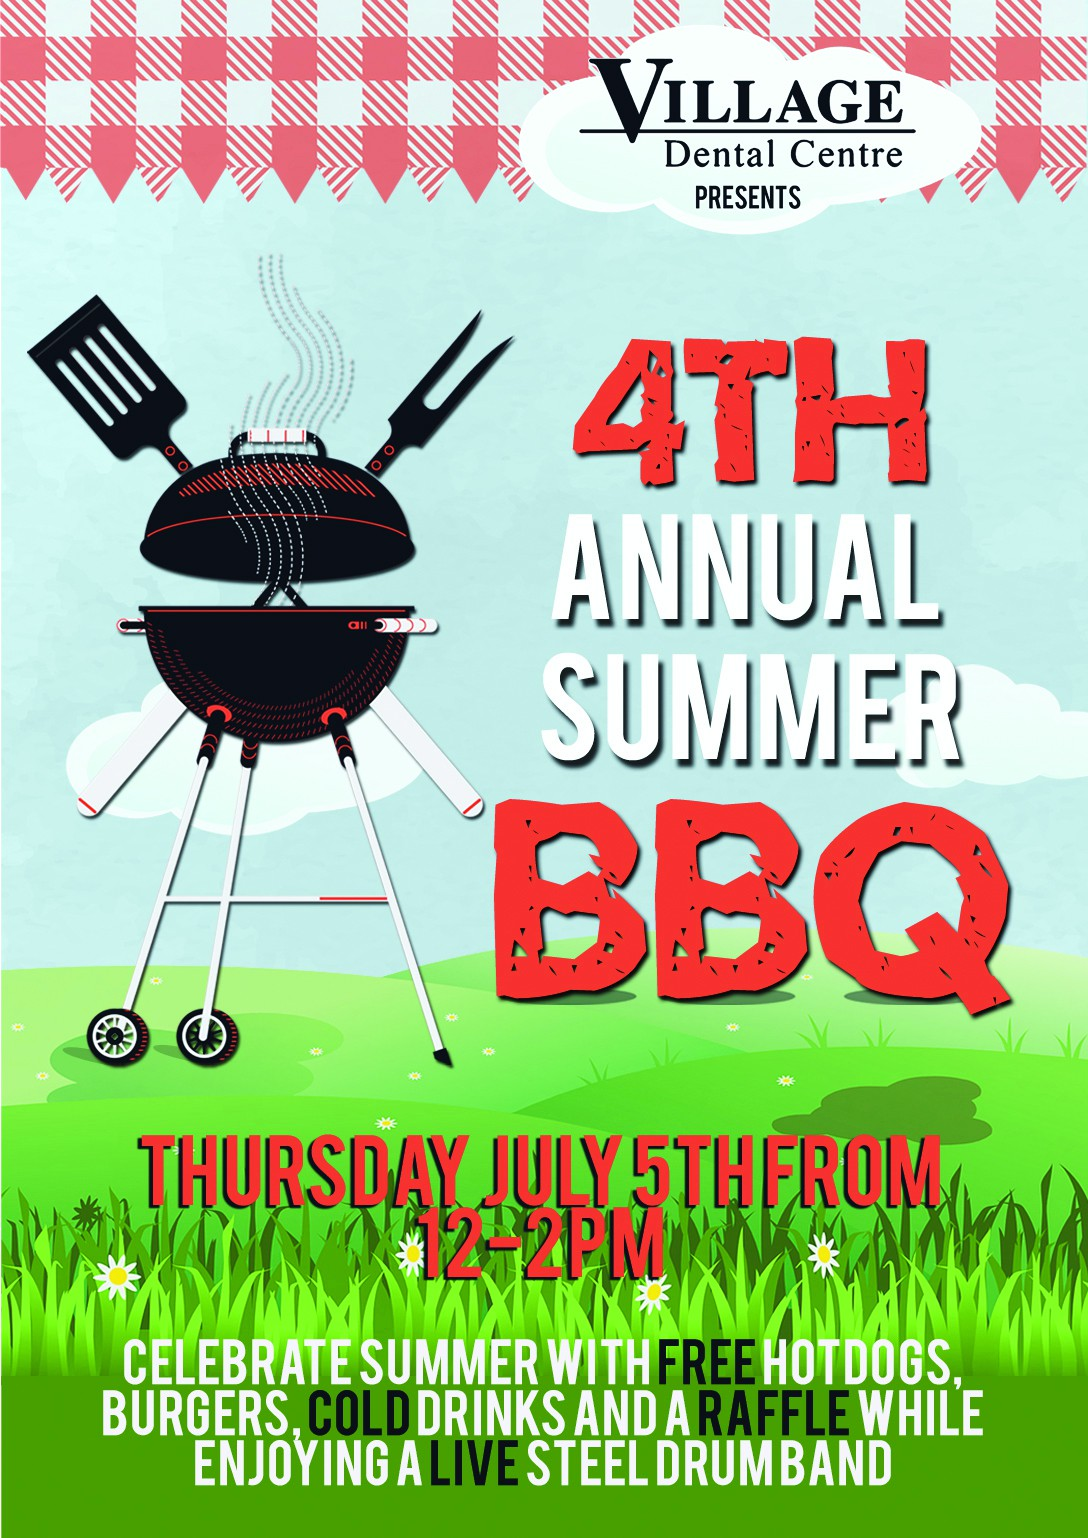 Village Dental Centre presents 4th Annual Summer BBQ